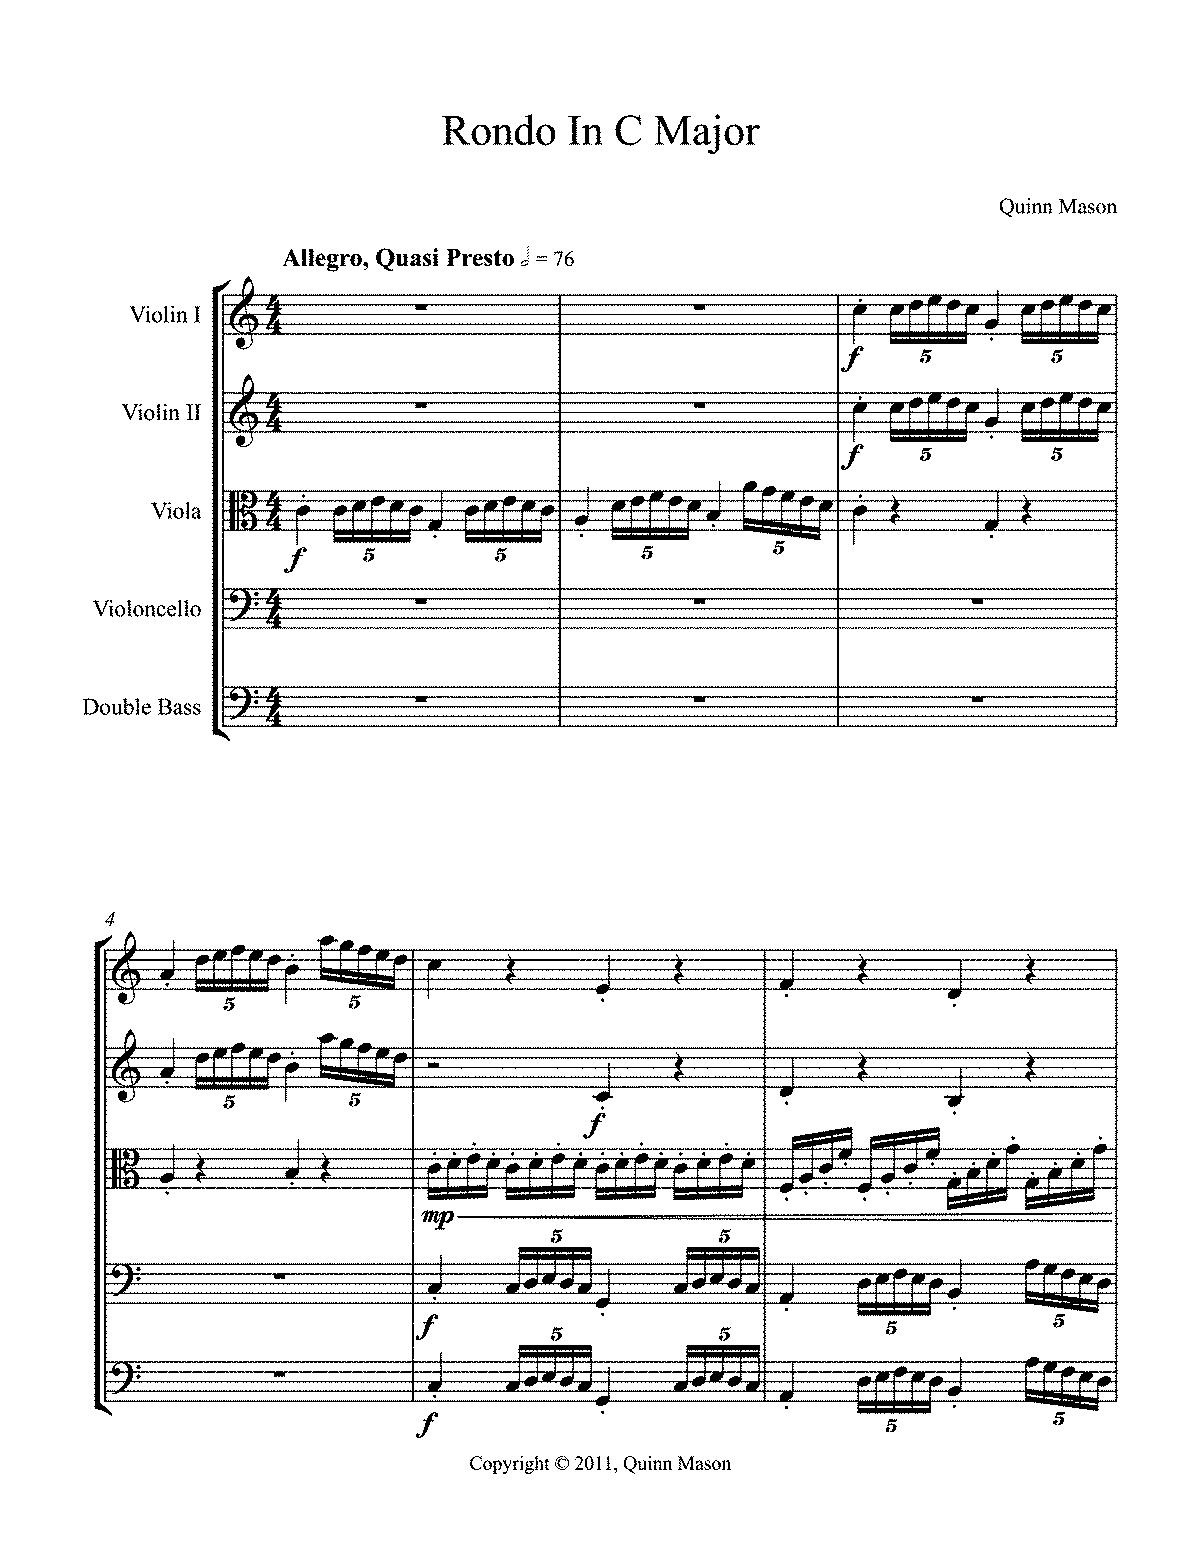 PMLP297635-Rondo In C Major.pdf